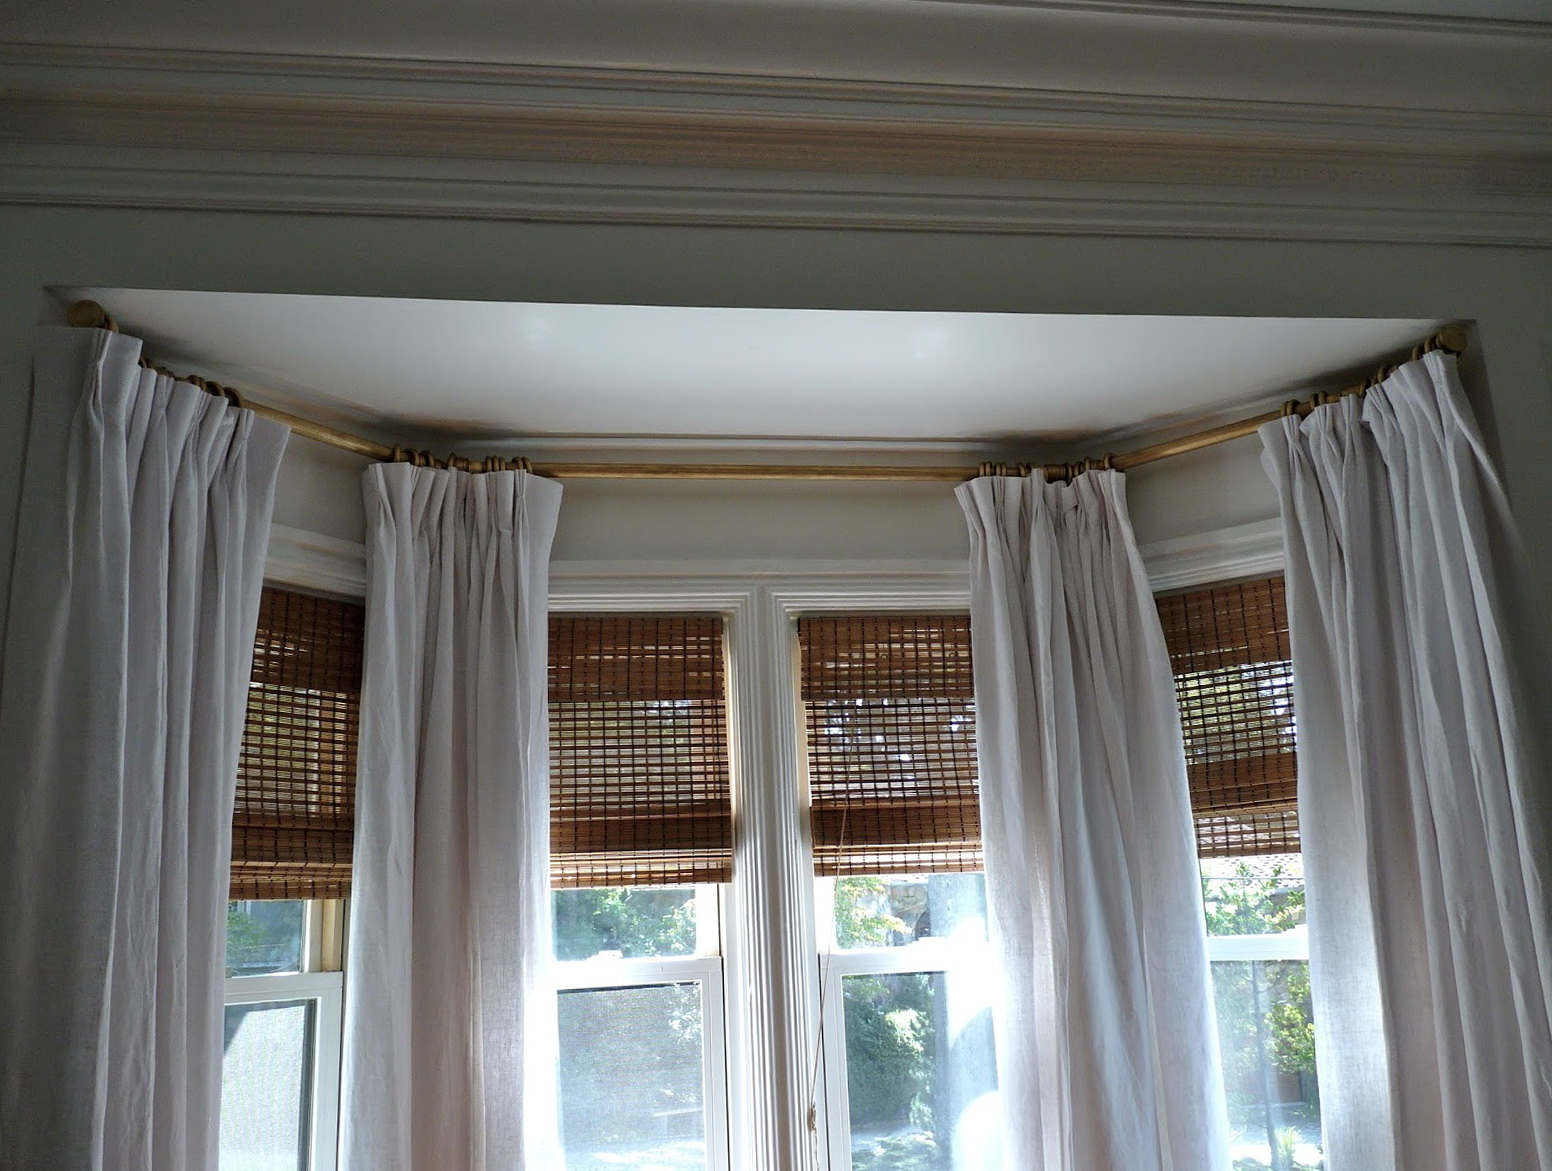 Where To Buy Curtain Rods For Bay Windows Home Design Ideas